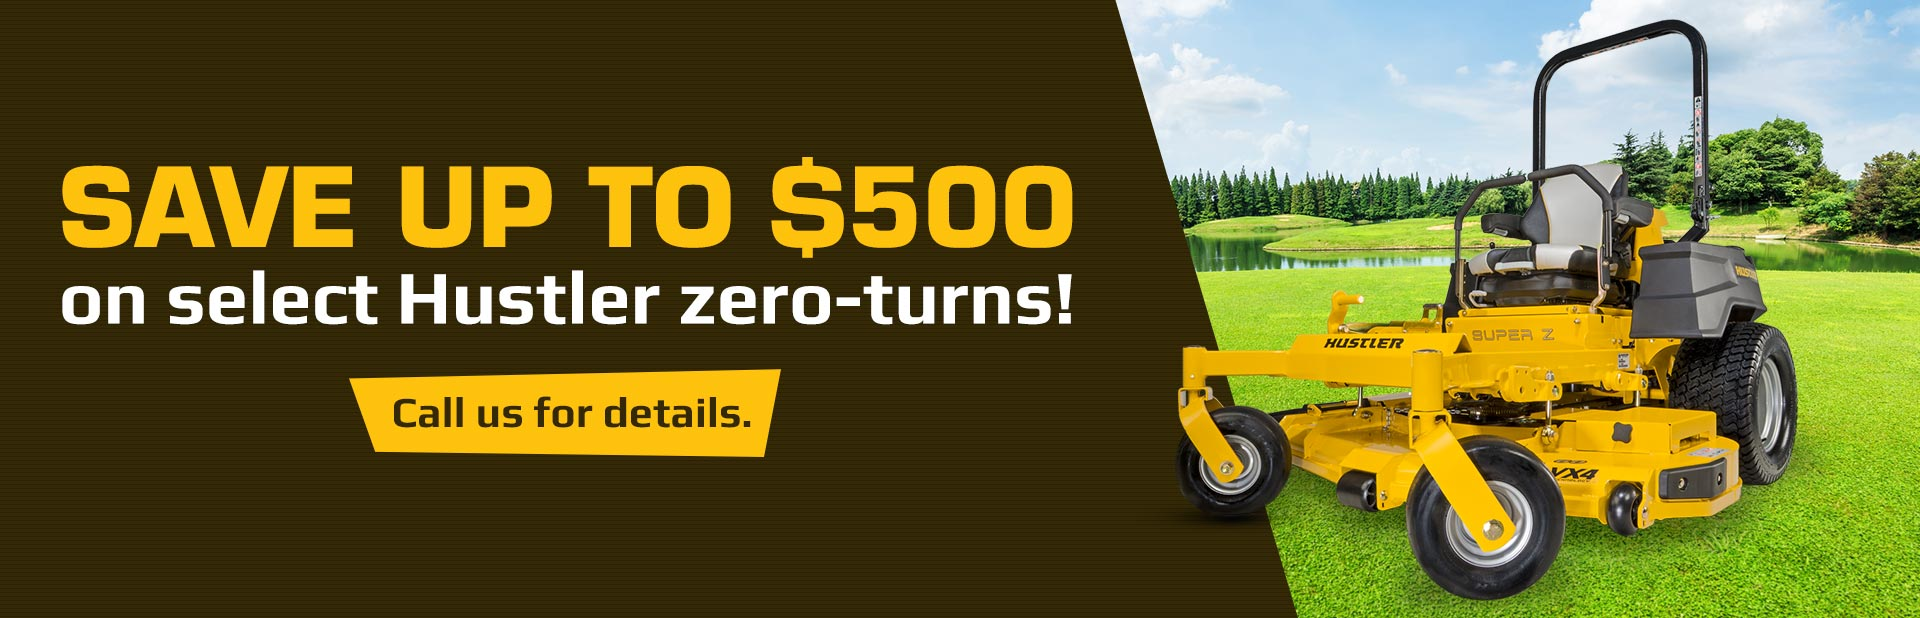 Save up to $500 on select Hustler zero-turns! Call 585-427-2333 for details.